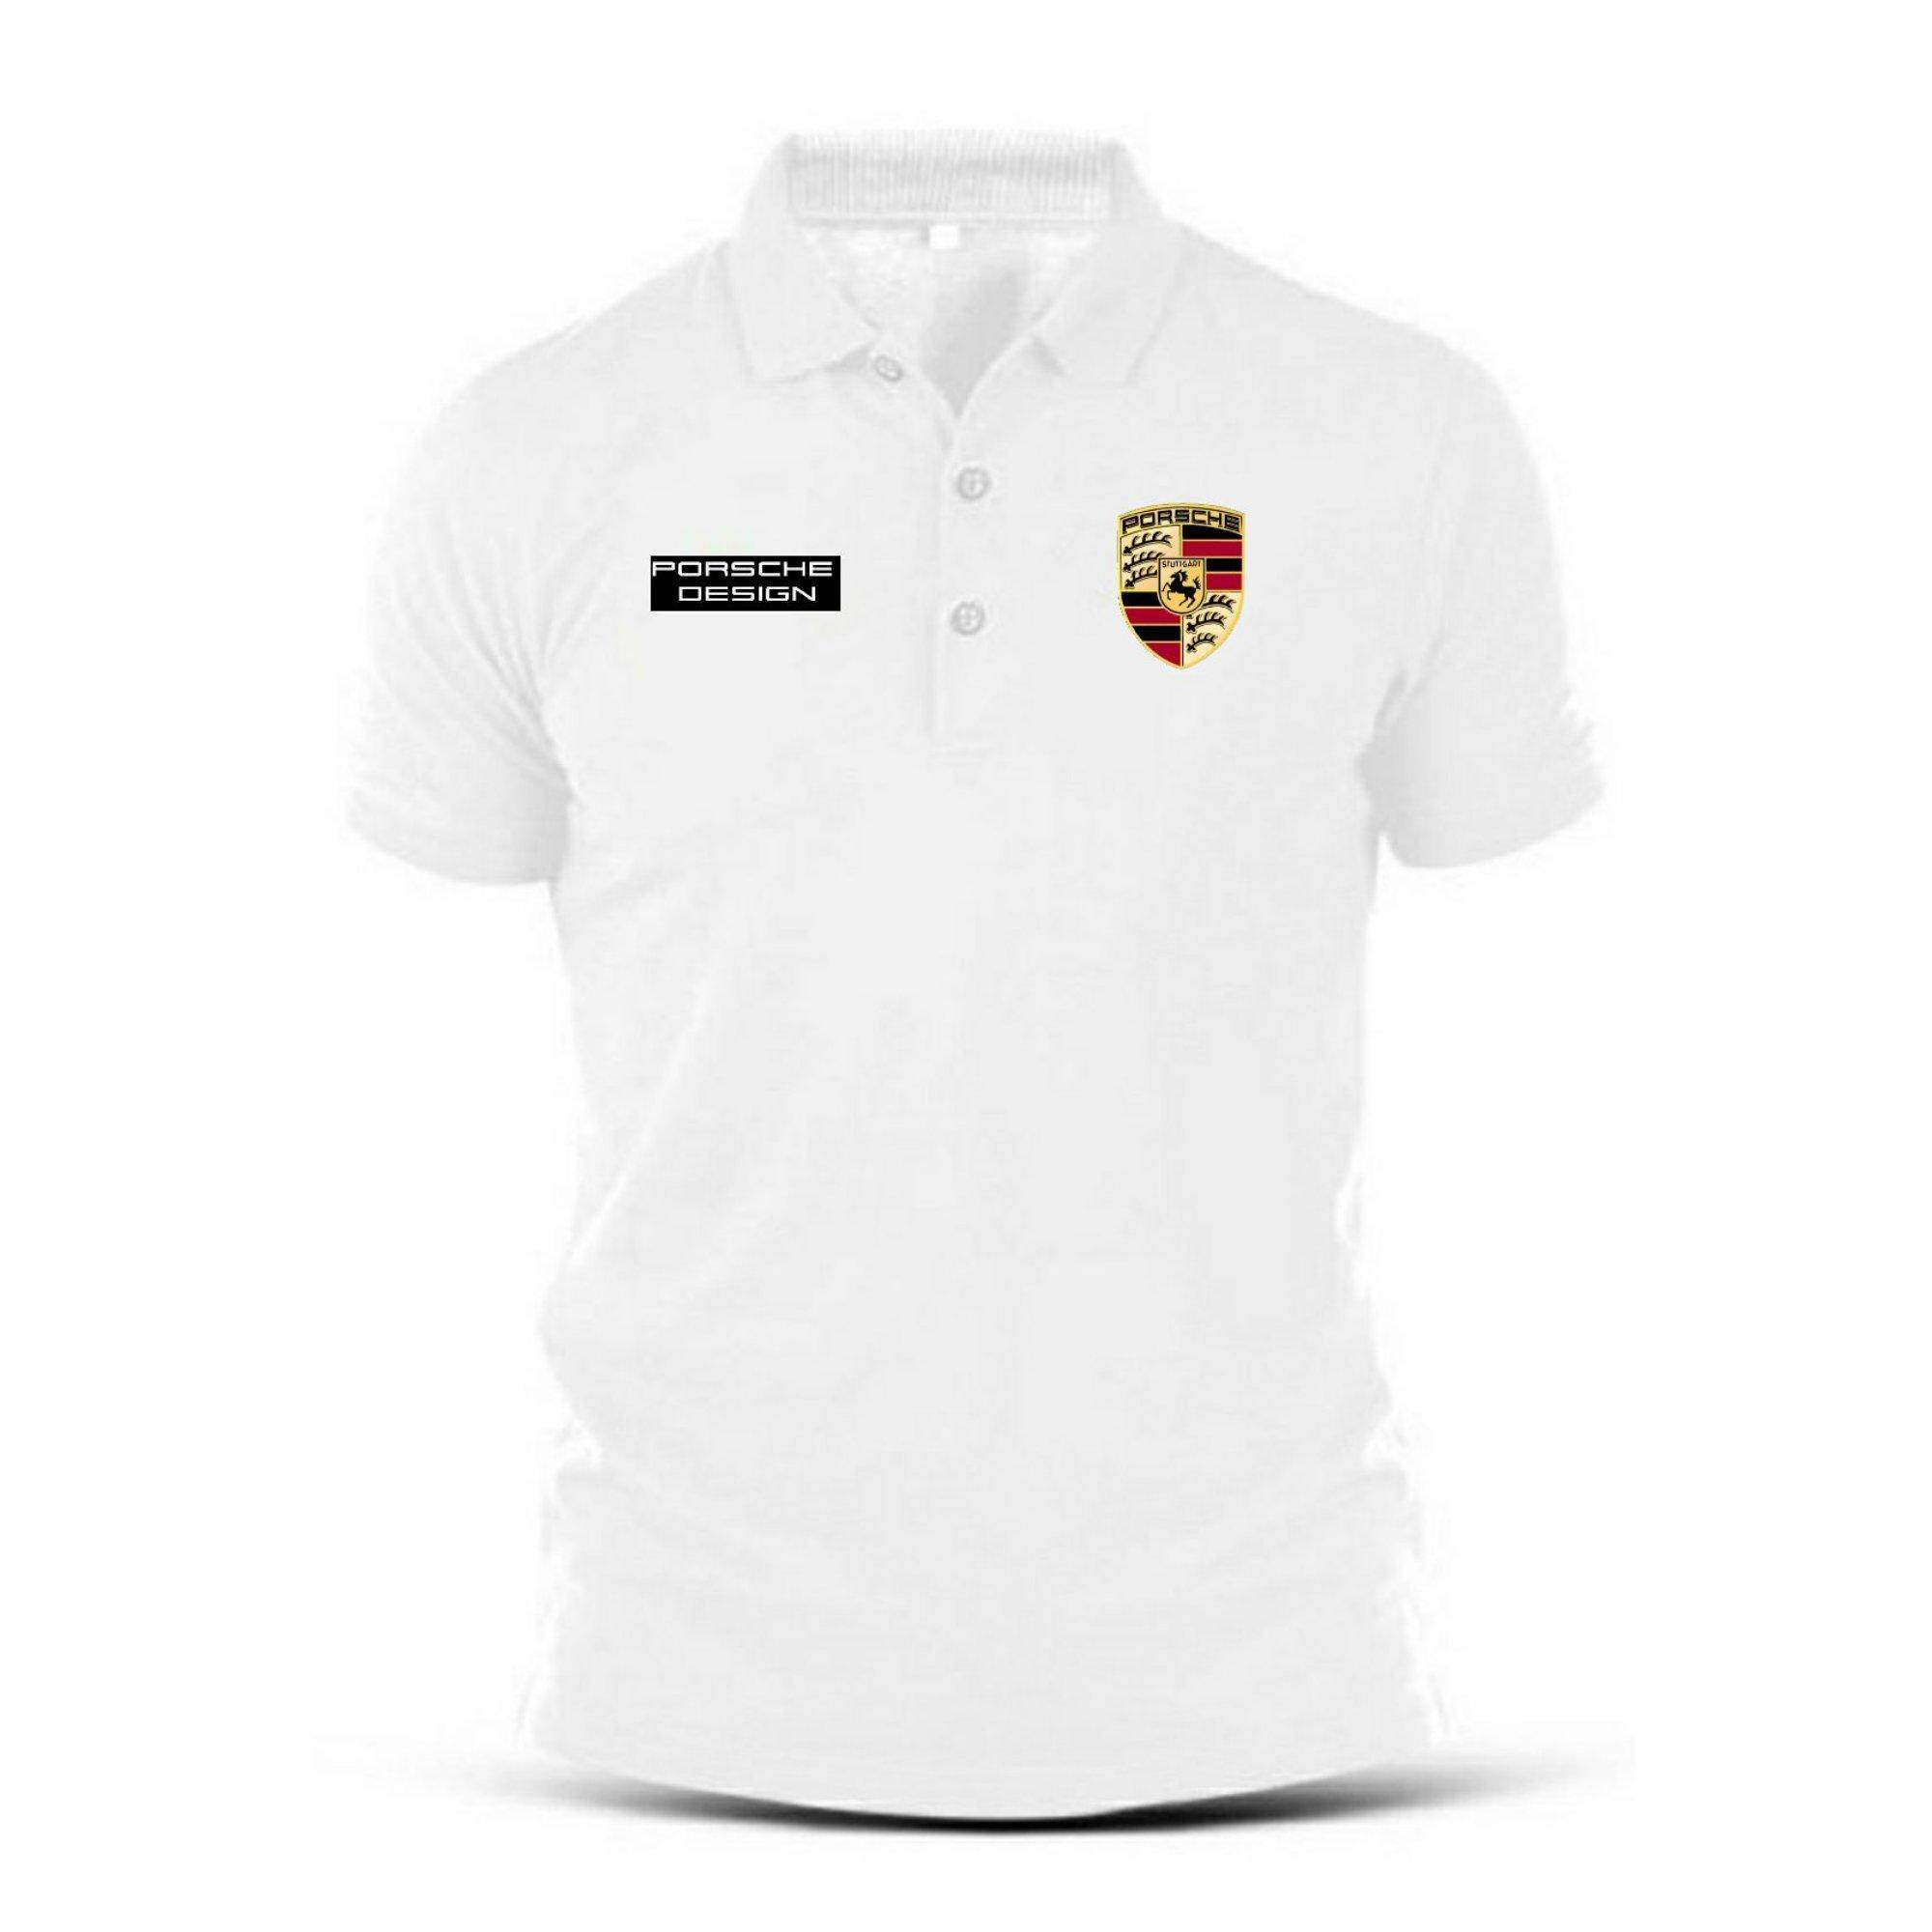 c084823f Men's Polo Shirts - Buy Men's Polo Shirts at Best Price in Malaysia |  www.lazada.com.my